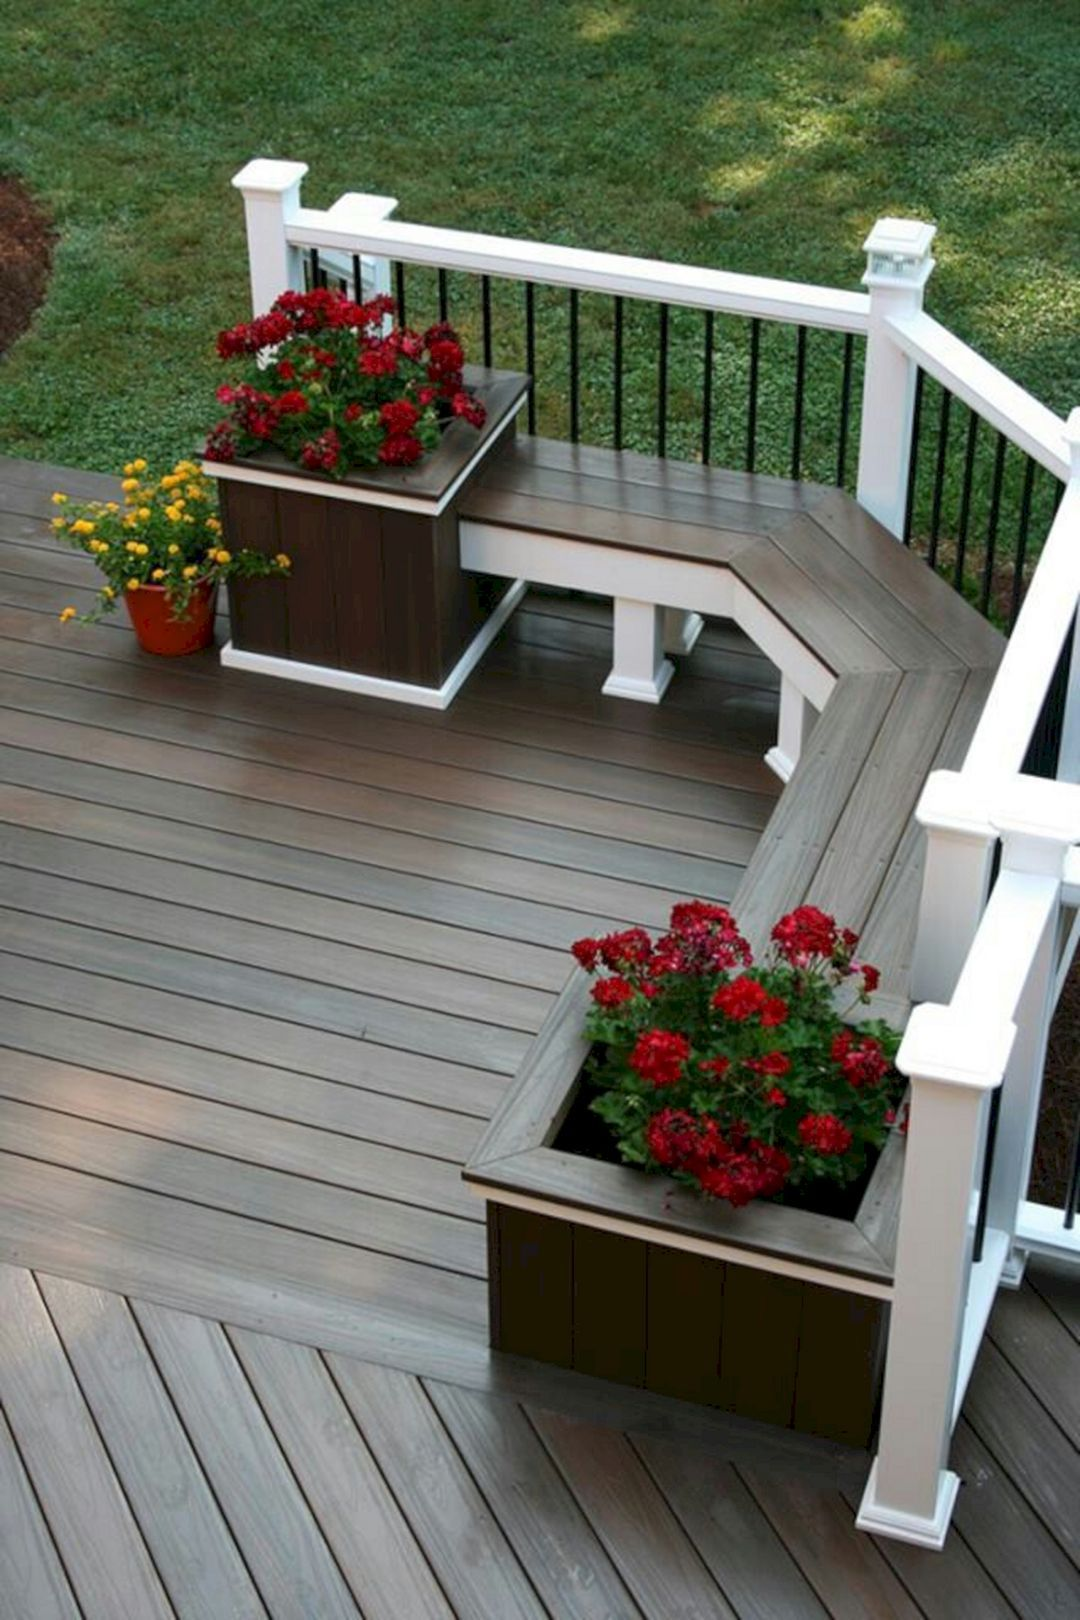 designs and pictures fantastic bench home seating ideas blytheprojects the deck